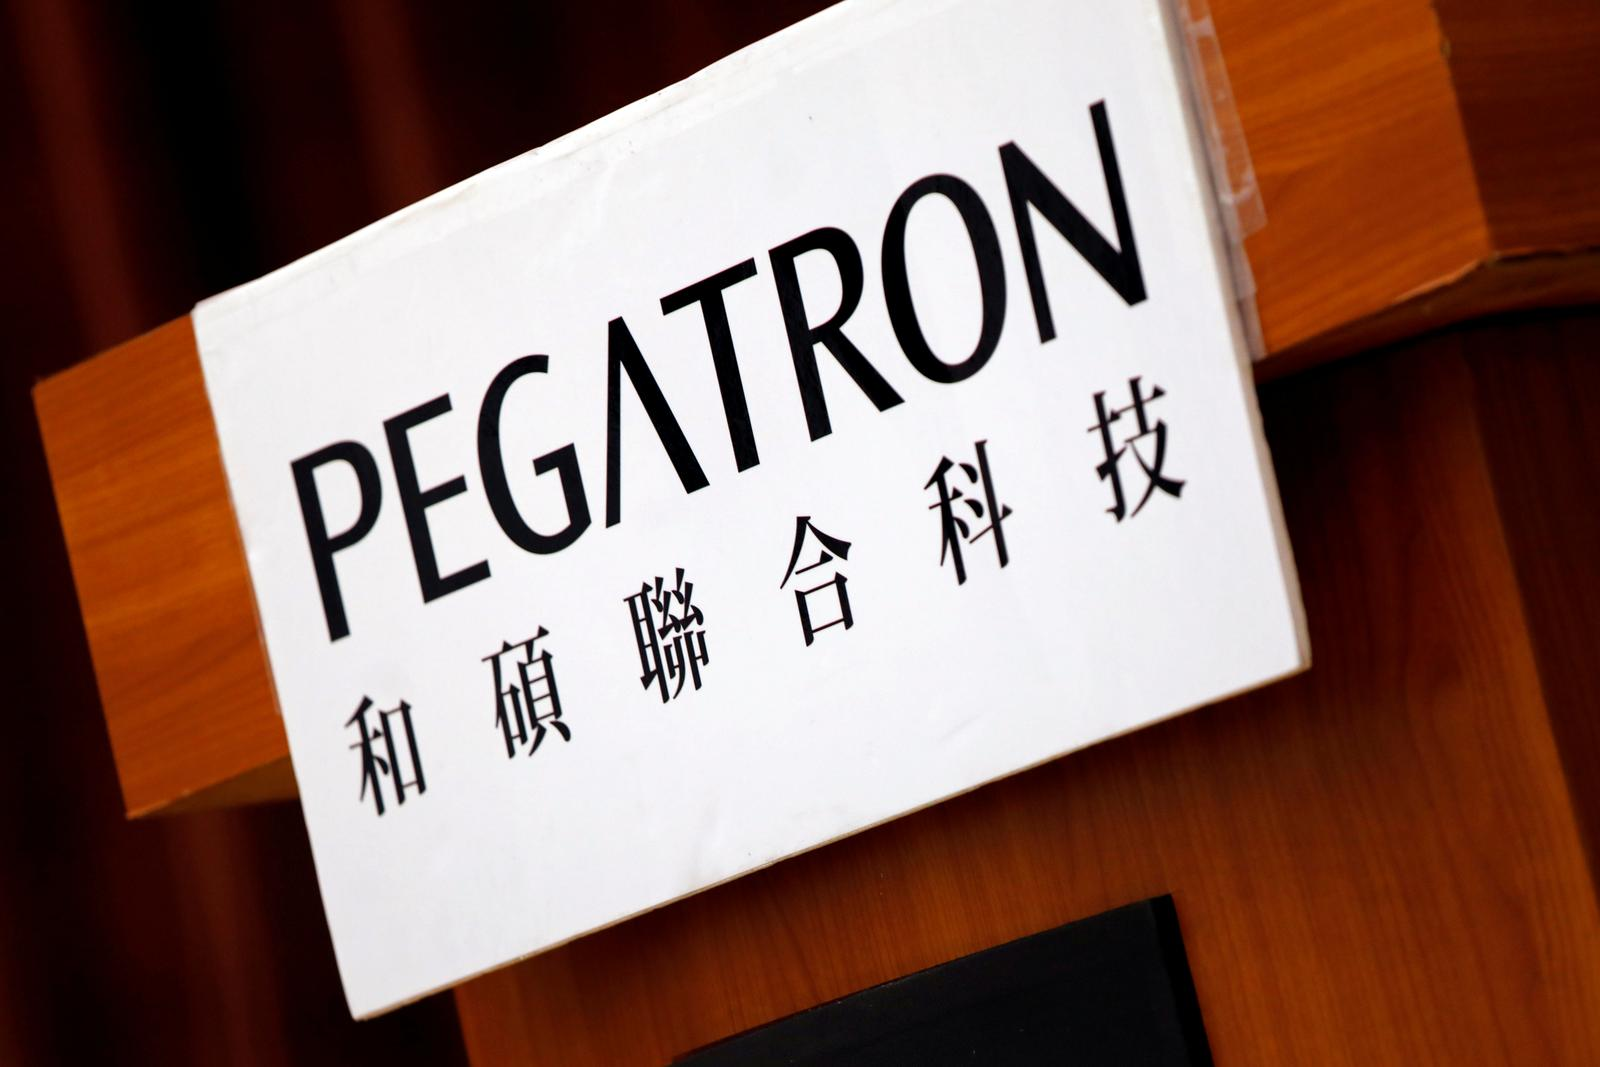 Taiwan approves $101 mln Pegatron investment in Vietnam